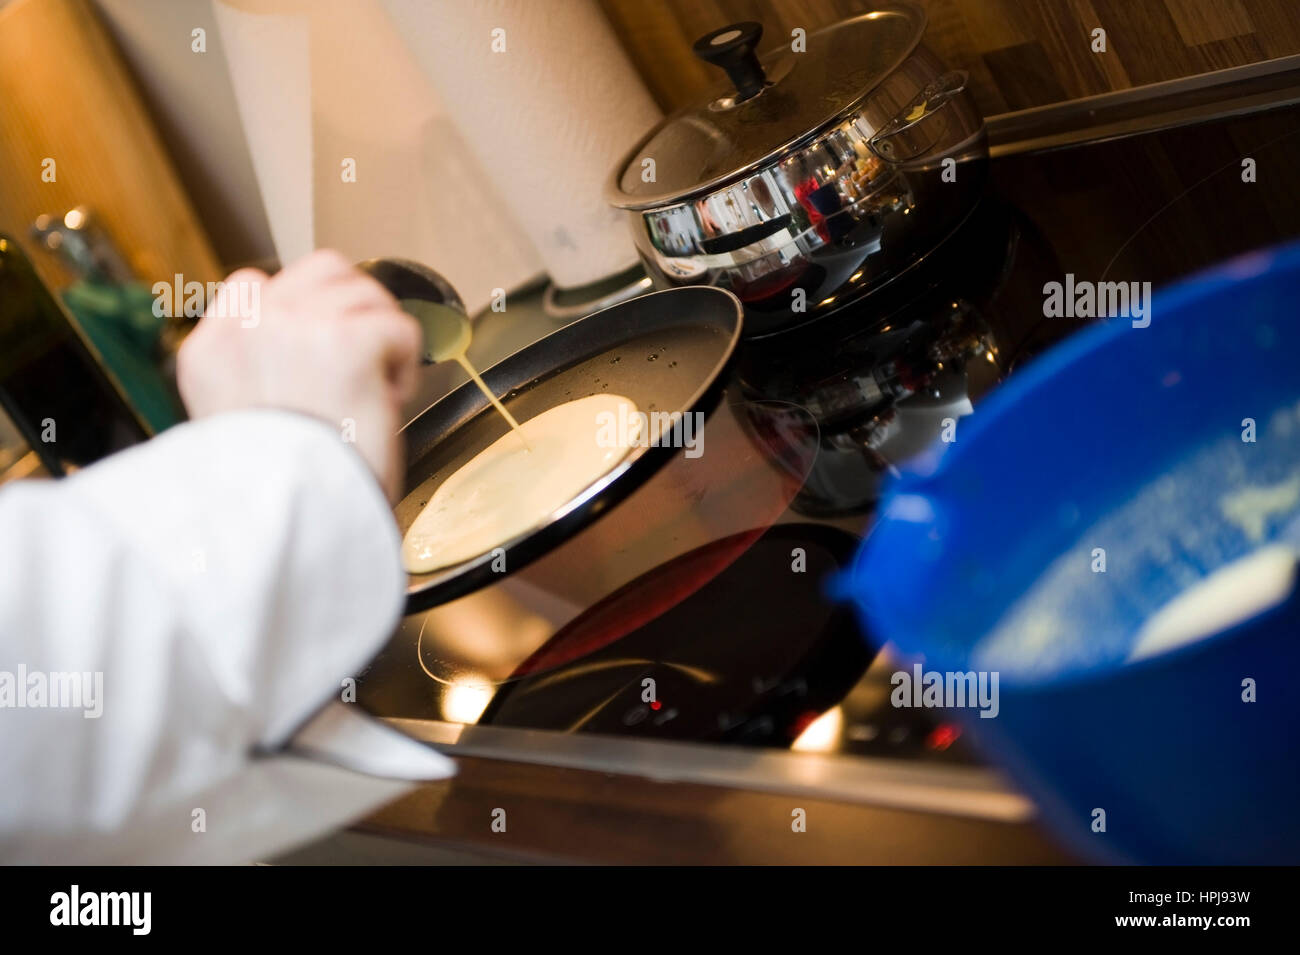 Crepes in der Pfanne zubereiten - cooking crepes - Stock Image